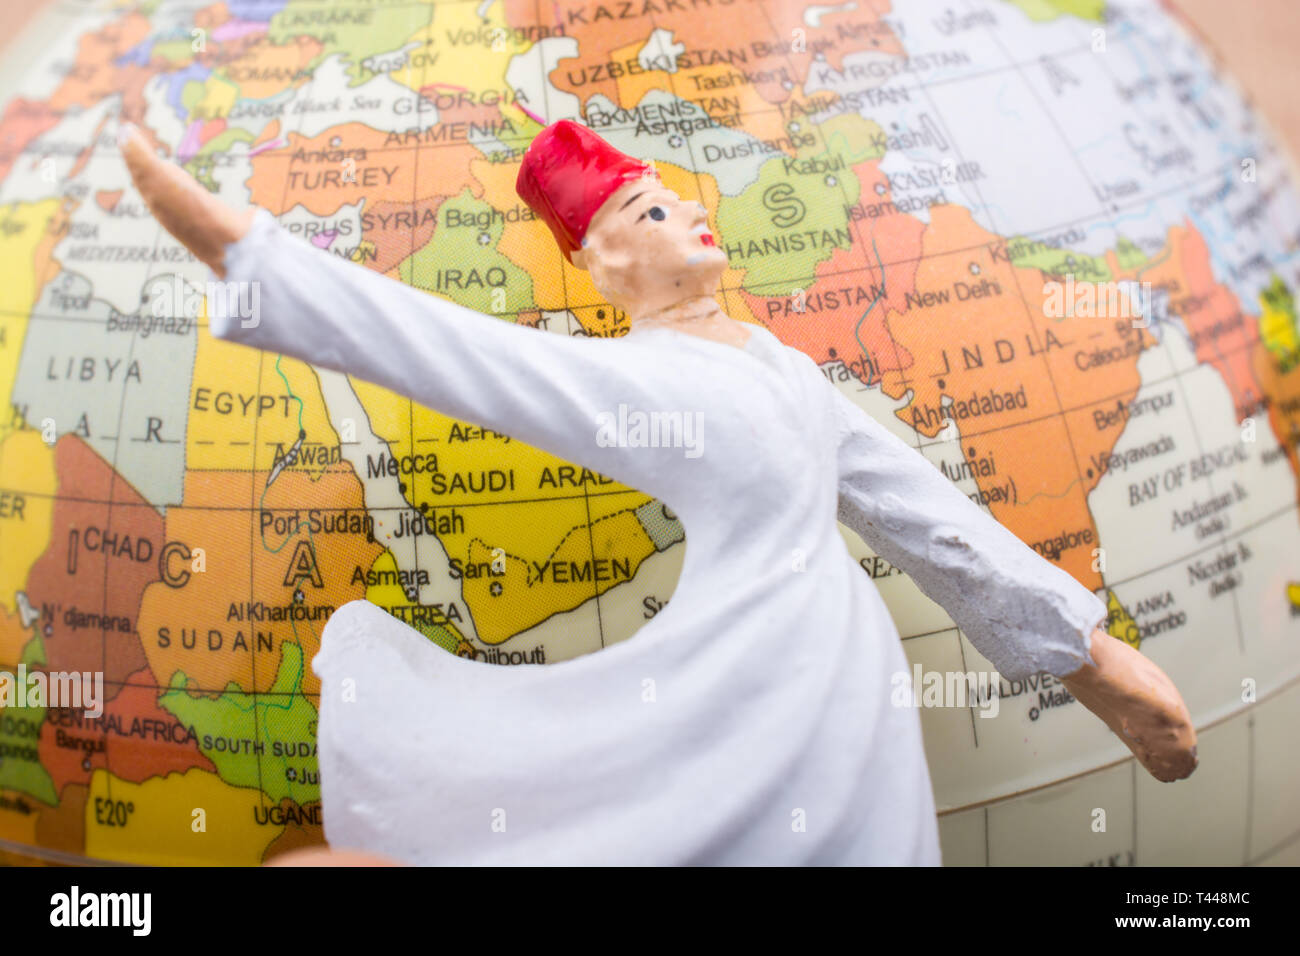 Swirling dervish in front of a globe on a textured background - Stock Image